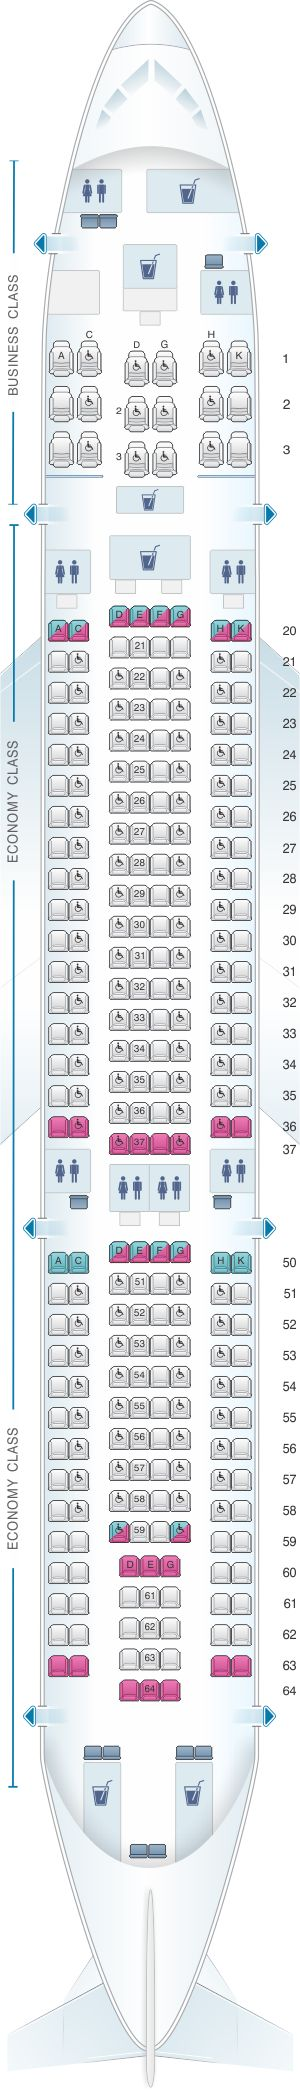 Seat Map SriLankan Airlines Airbus A330-200 Config. 1